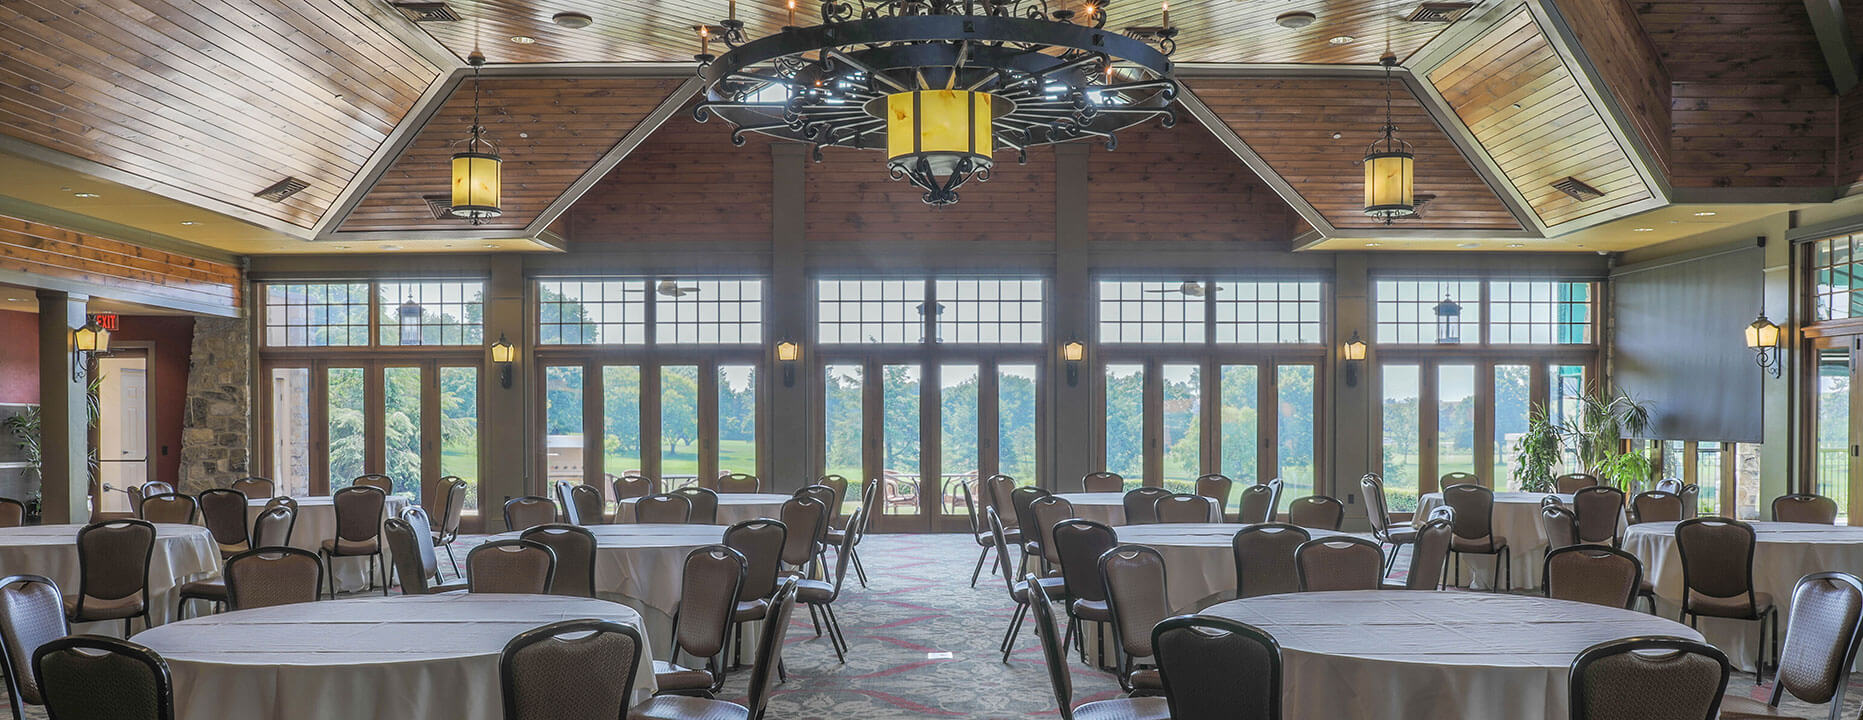 Picard Grand Pavilion at Hershey Country Club